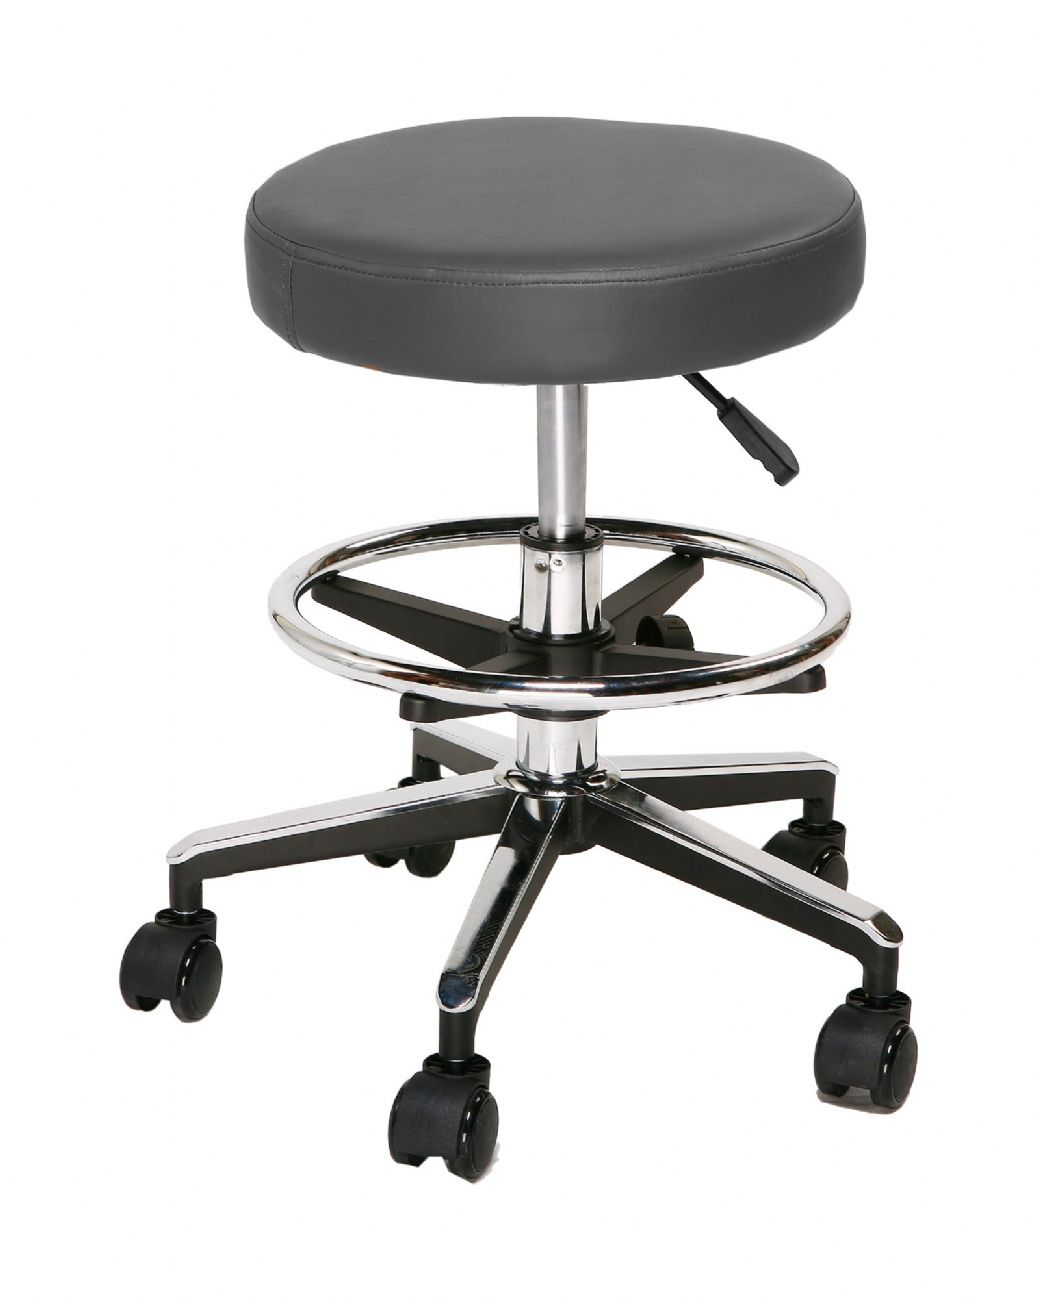 TRAG EASY Adjustable stool round base without backrest with footrest